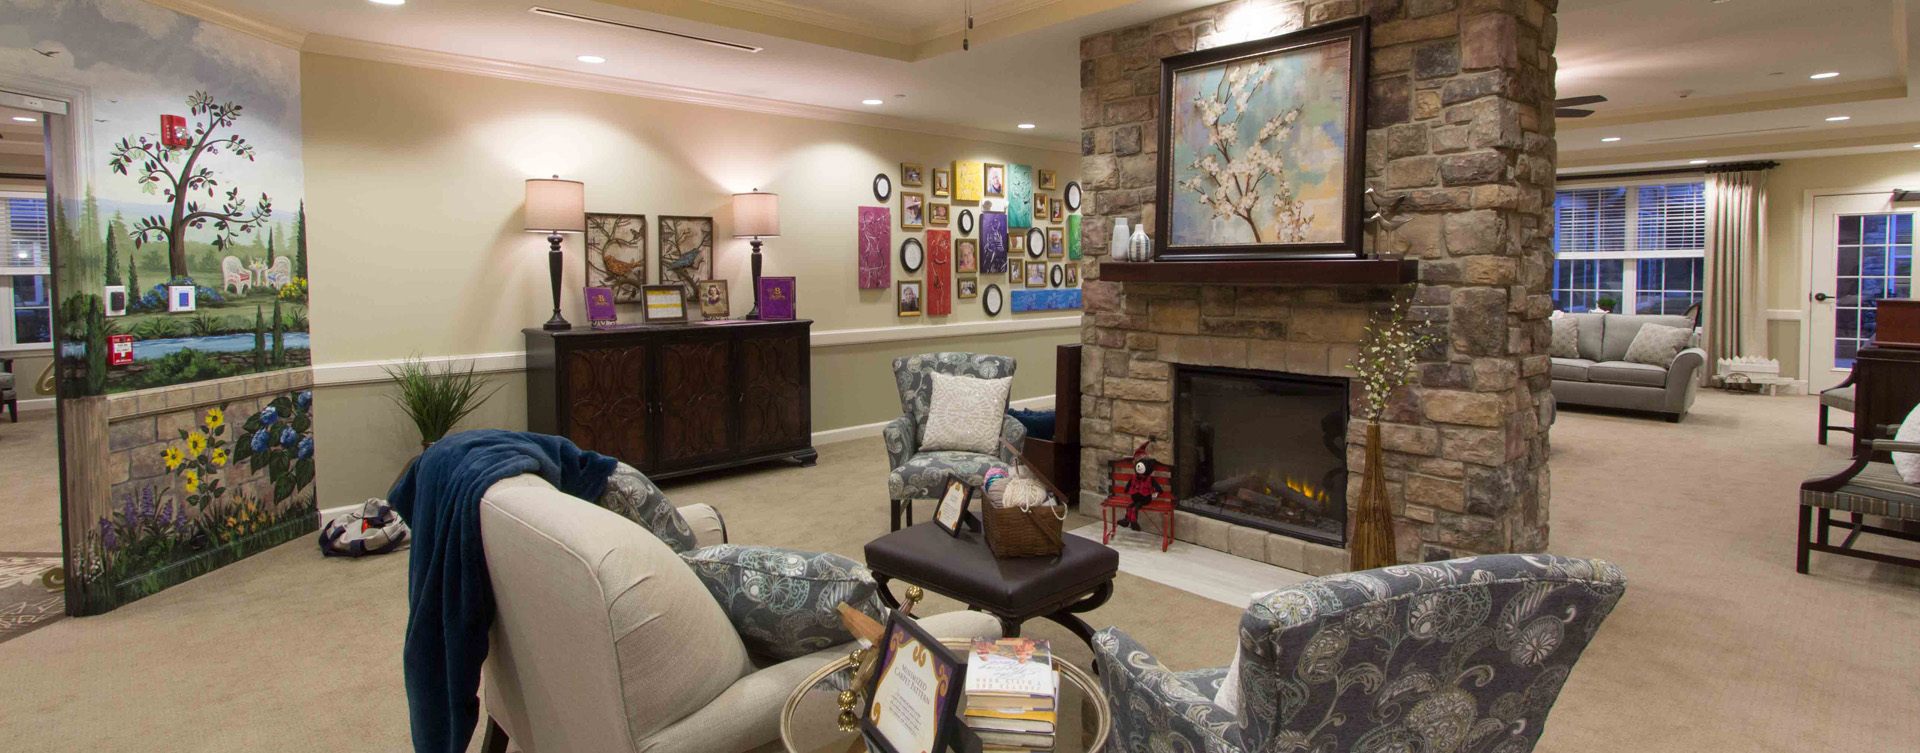 Residents can enjoy furniture covered in cozy fabrics in the Mary B's living room at Bickford of Gurnee